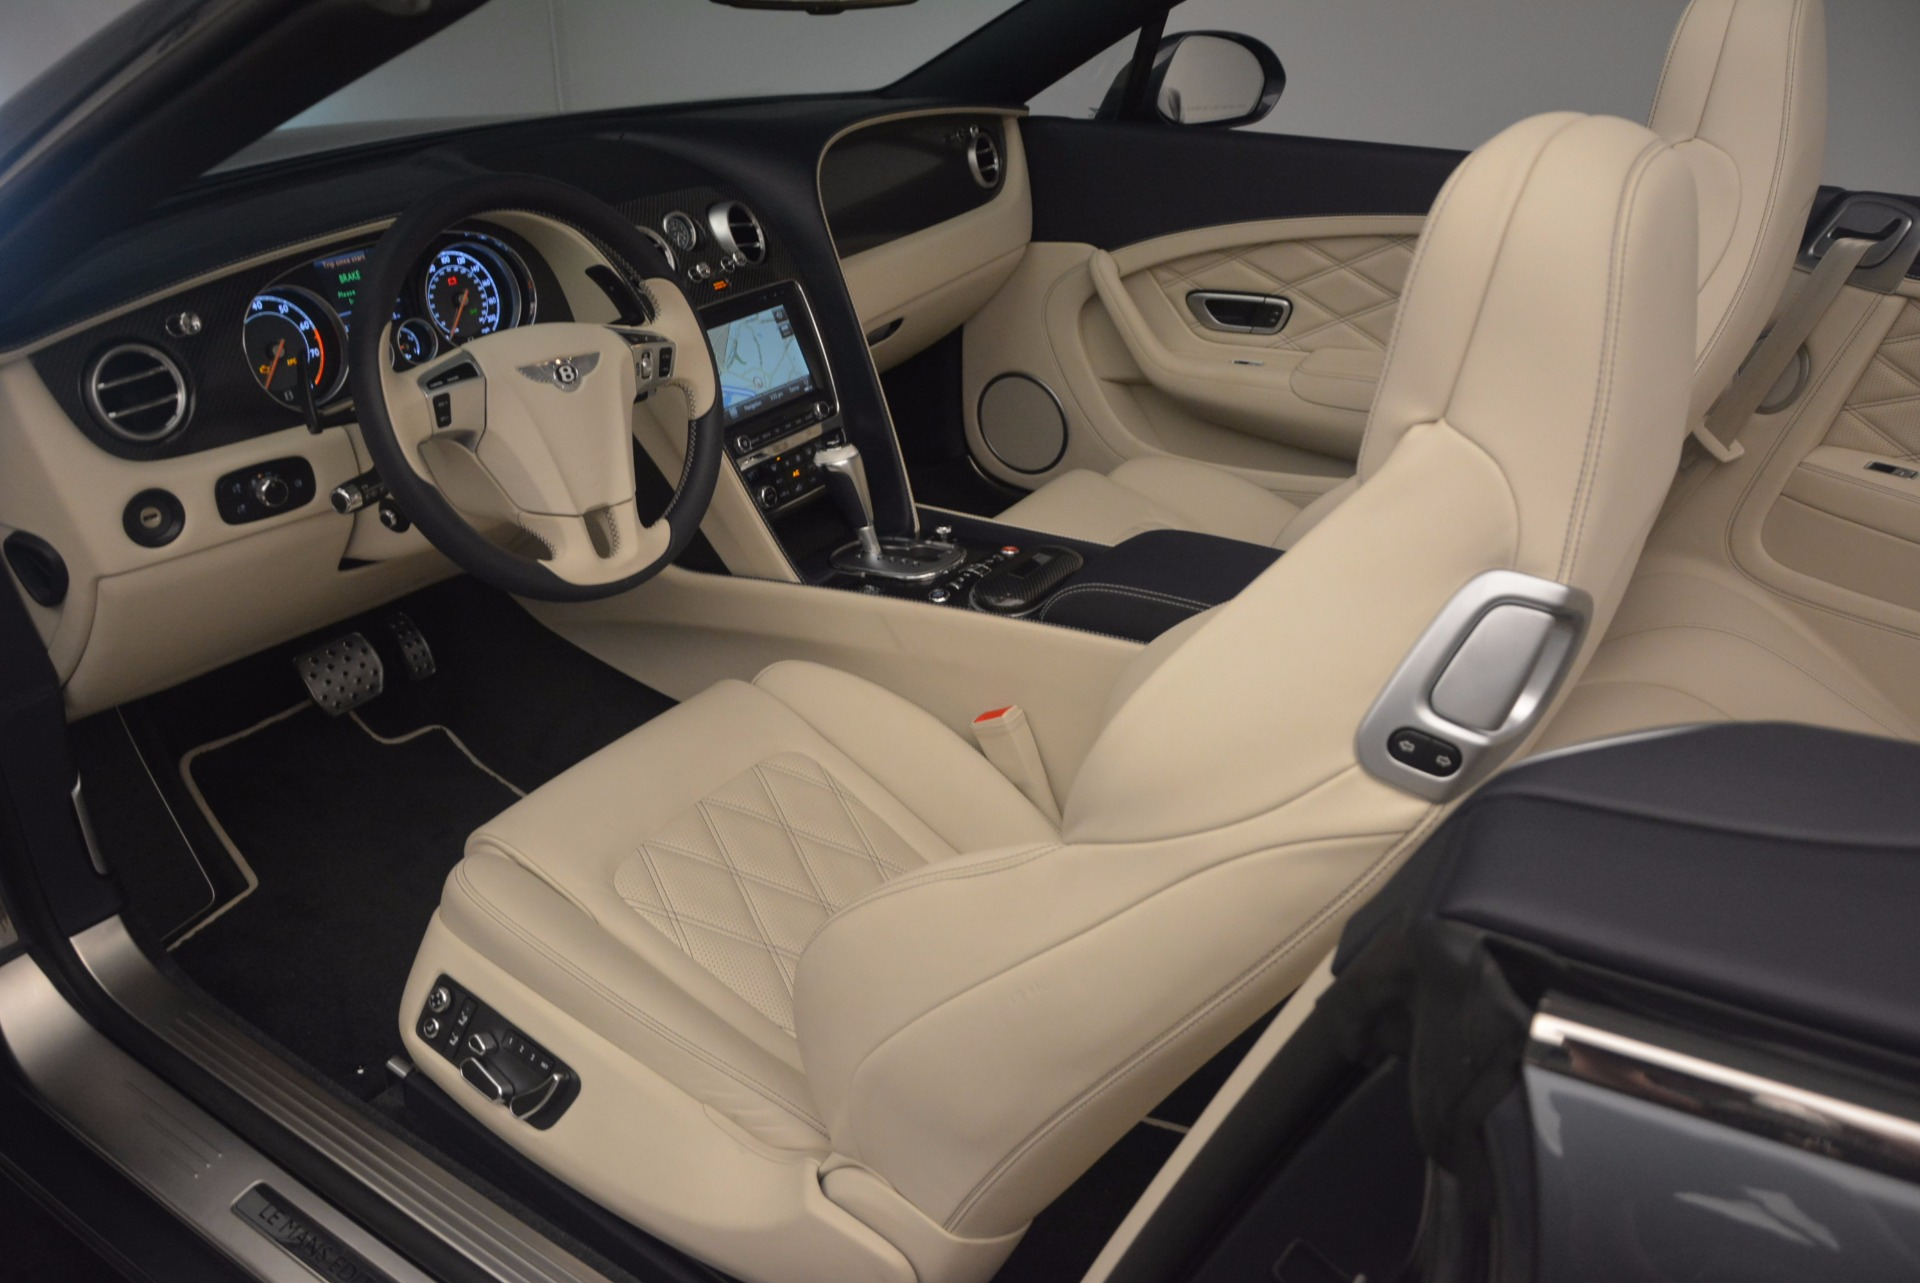 Used 2013 Bentley Continental GT V8 Le Mans Edition, 1 of 48 For Sale In Greenwich, CT 1288_p33